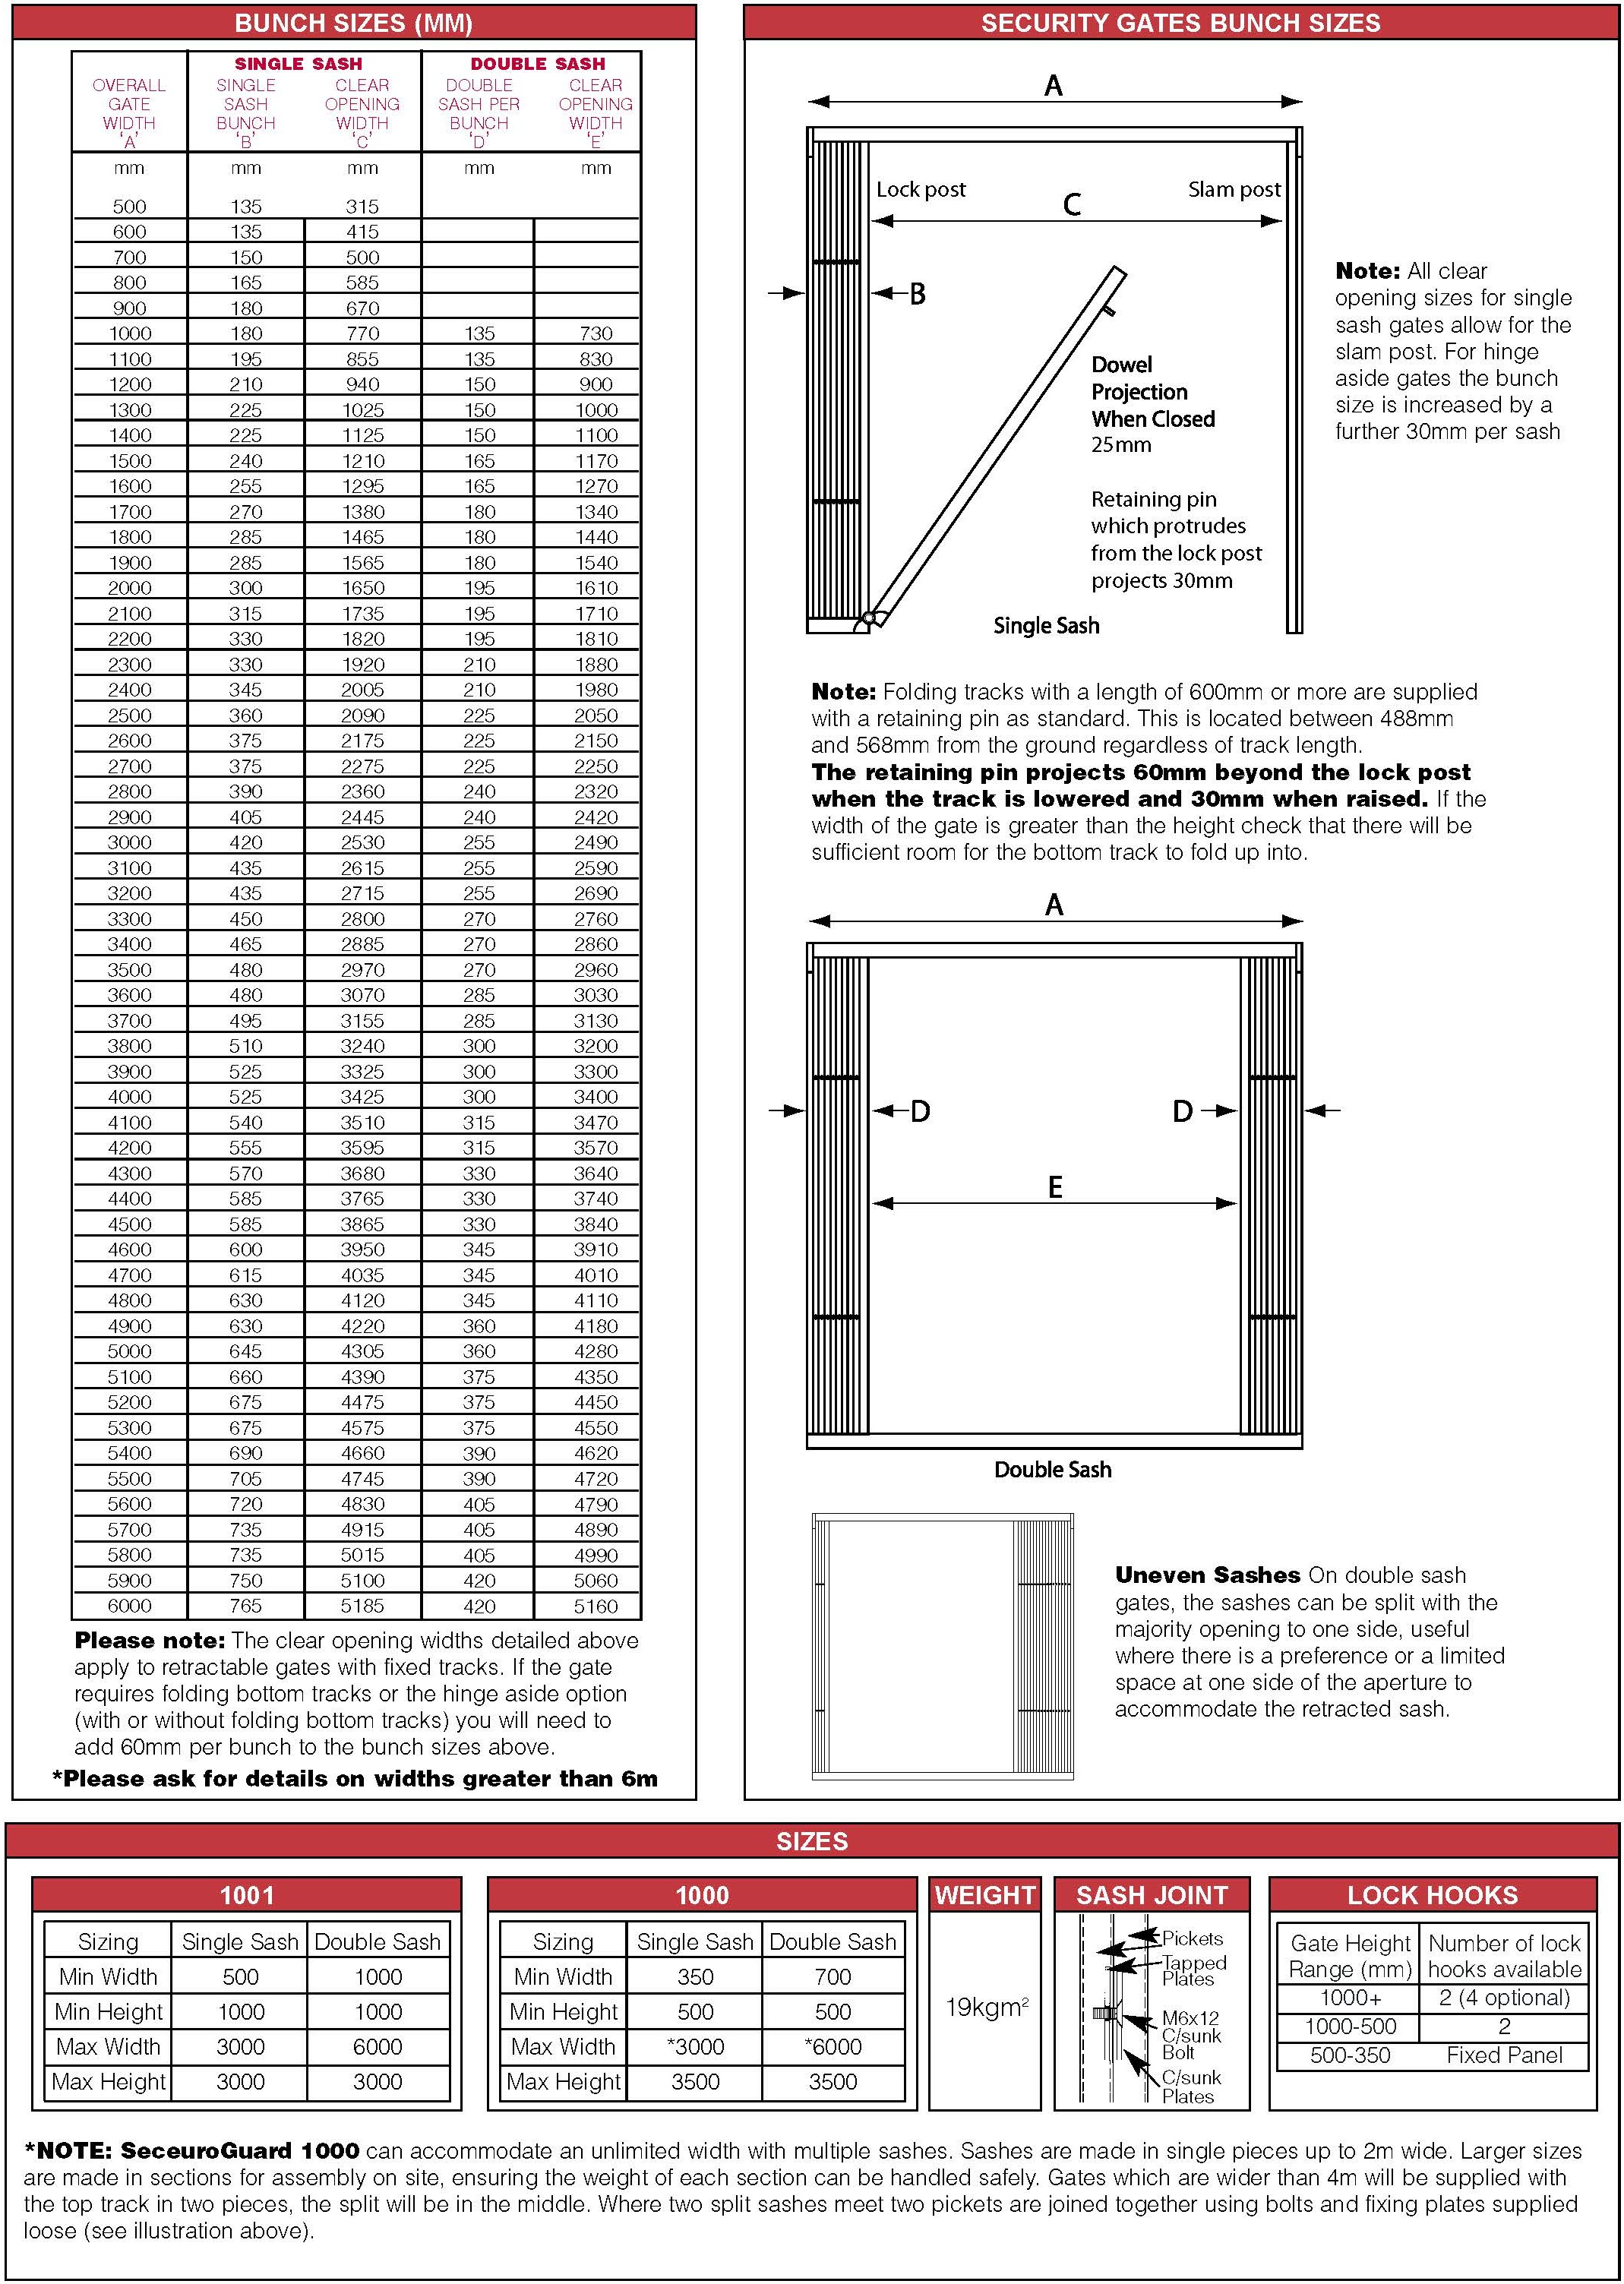 Dimensions for measuring a Security grille